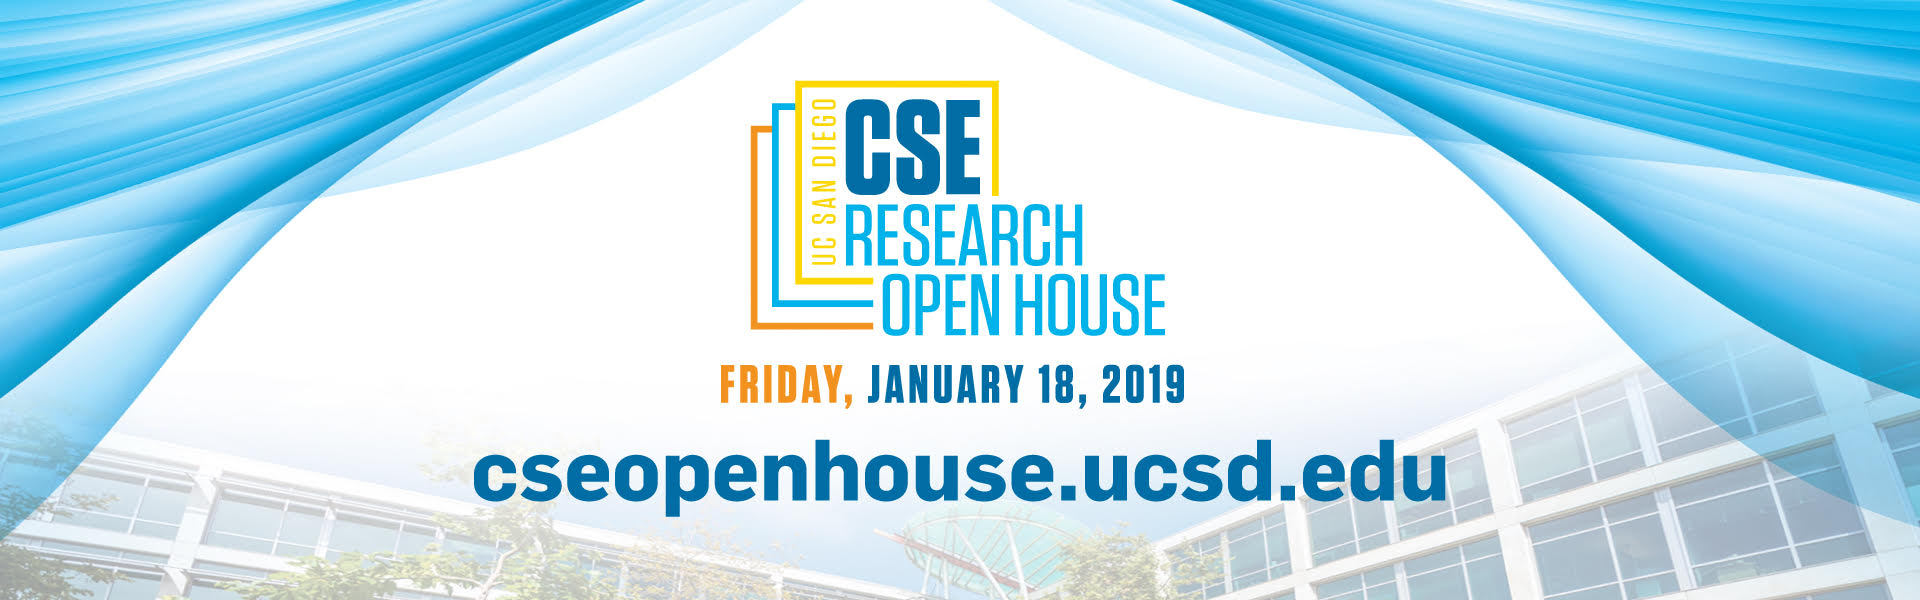 CSE Research Open House